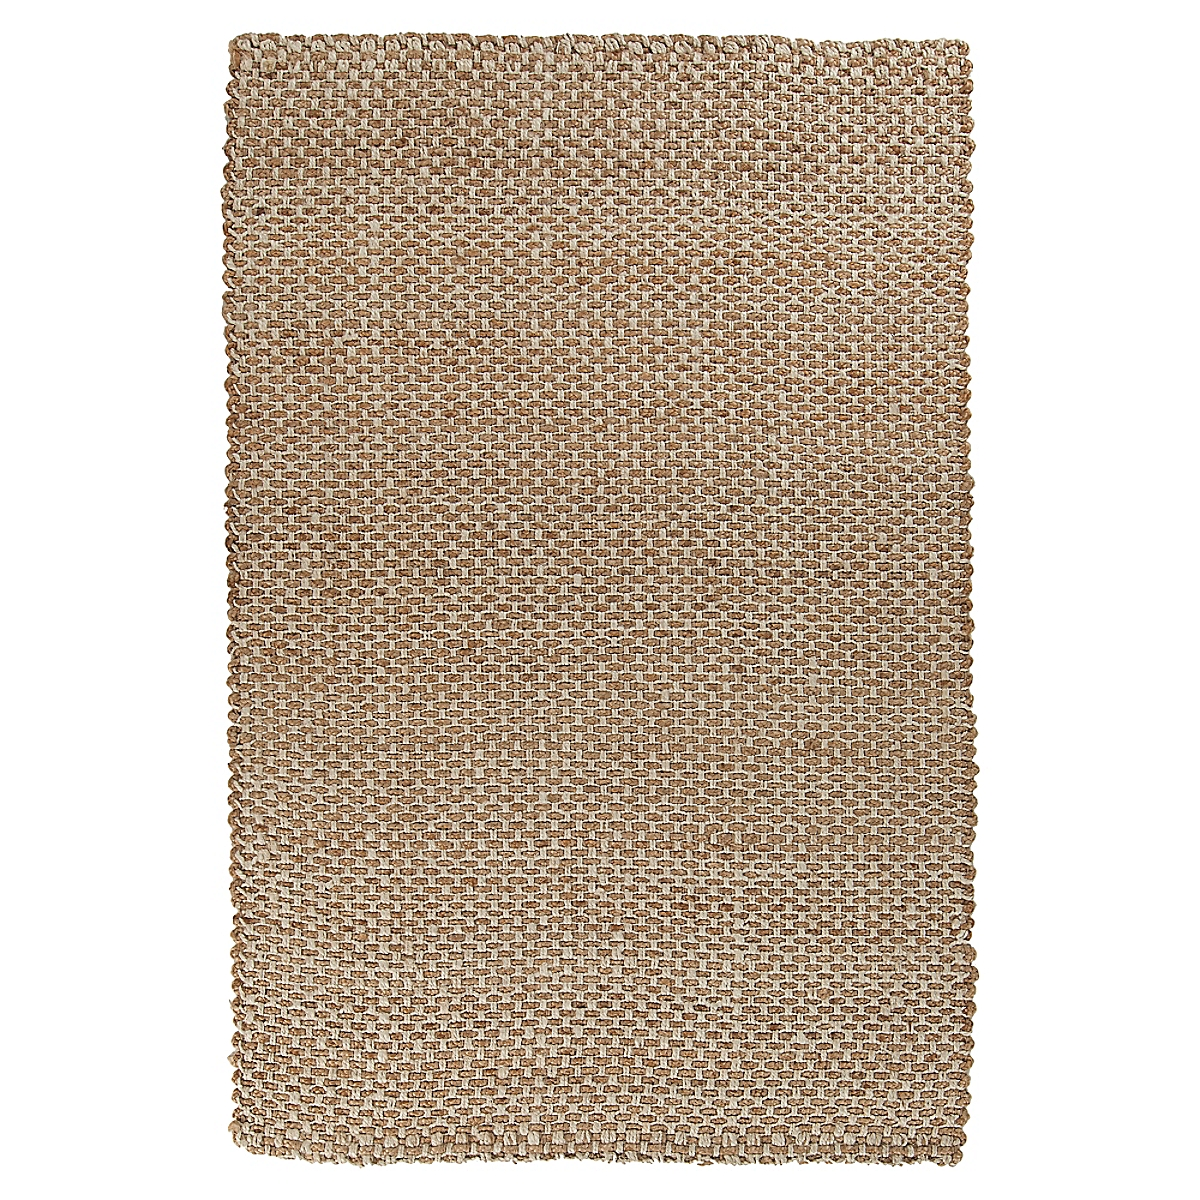 Basketweave Jute Rug - Natural